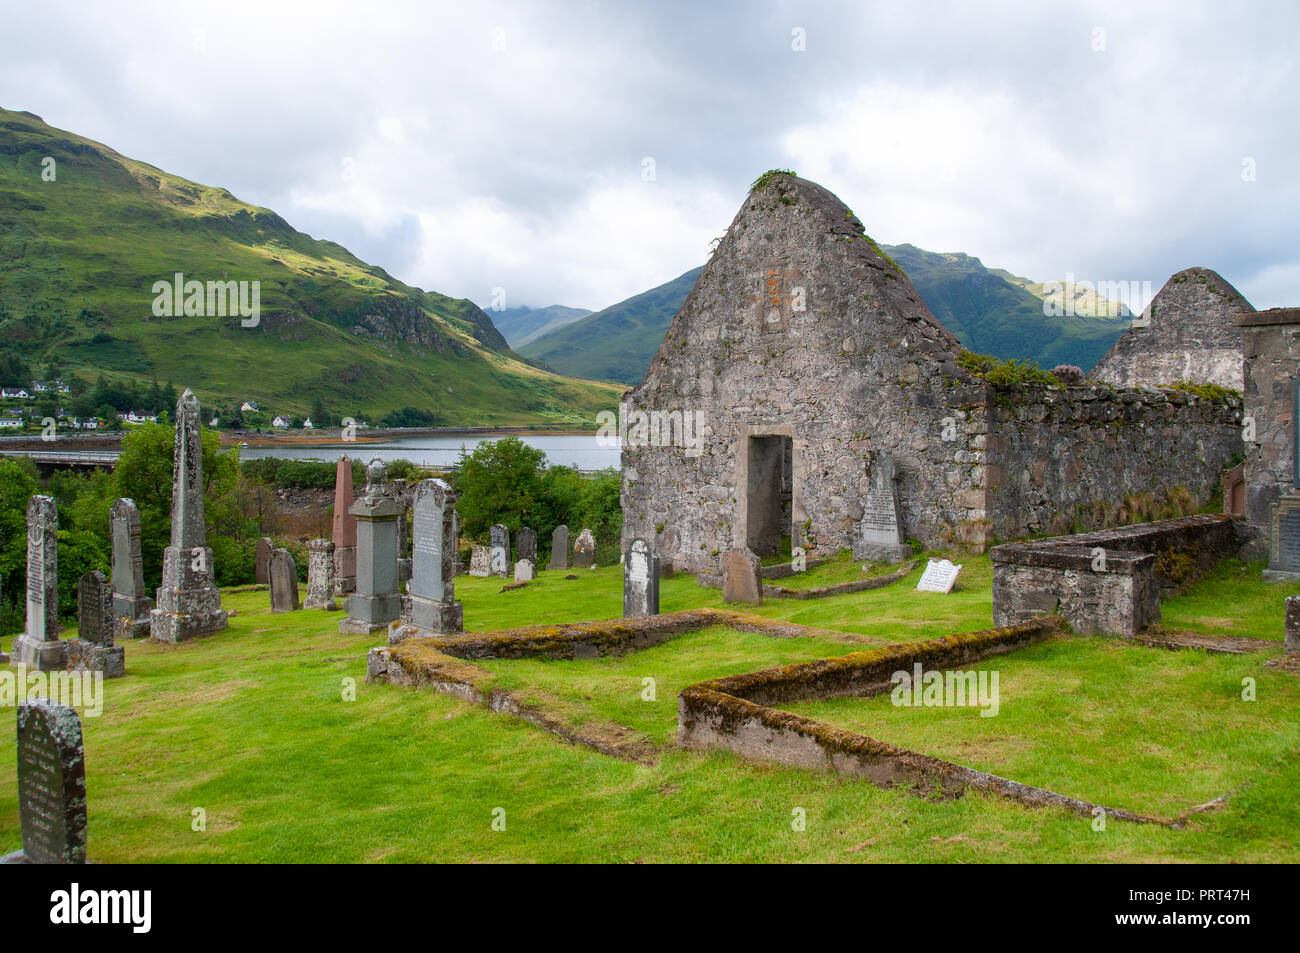 Crumbling stone ruins of barns, stone walls and old gravestones on a bank above still water, in the Scottish Highlands - Stock Image